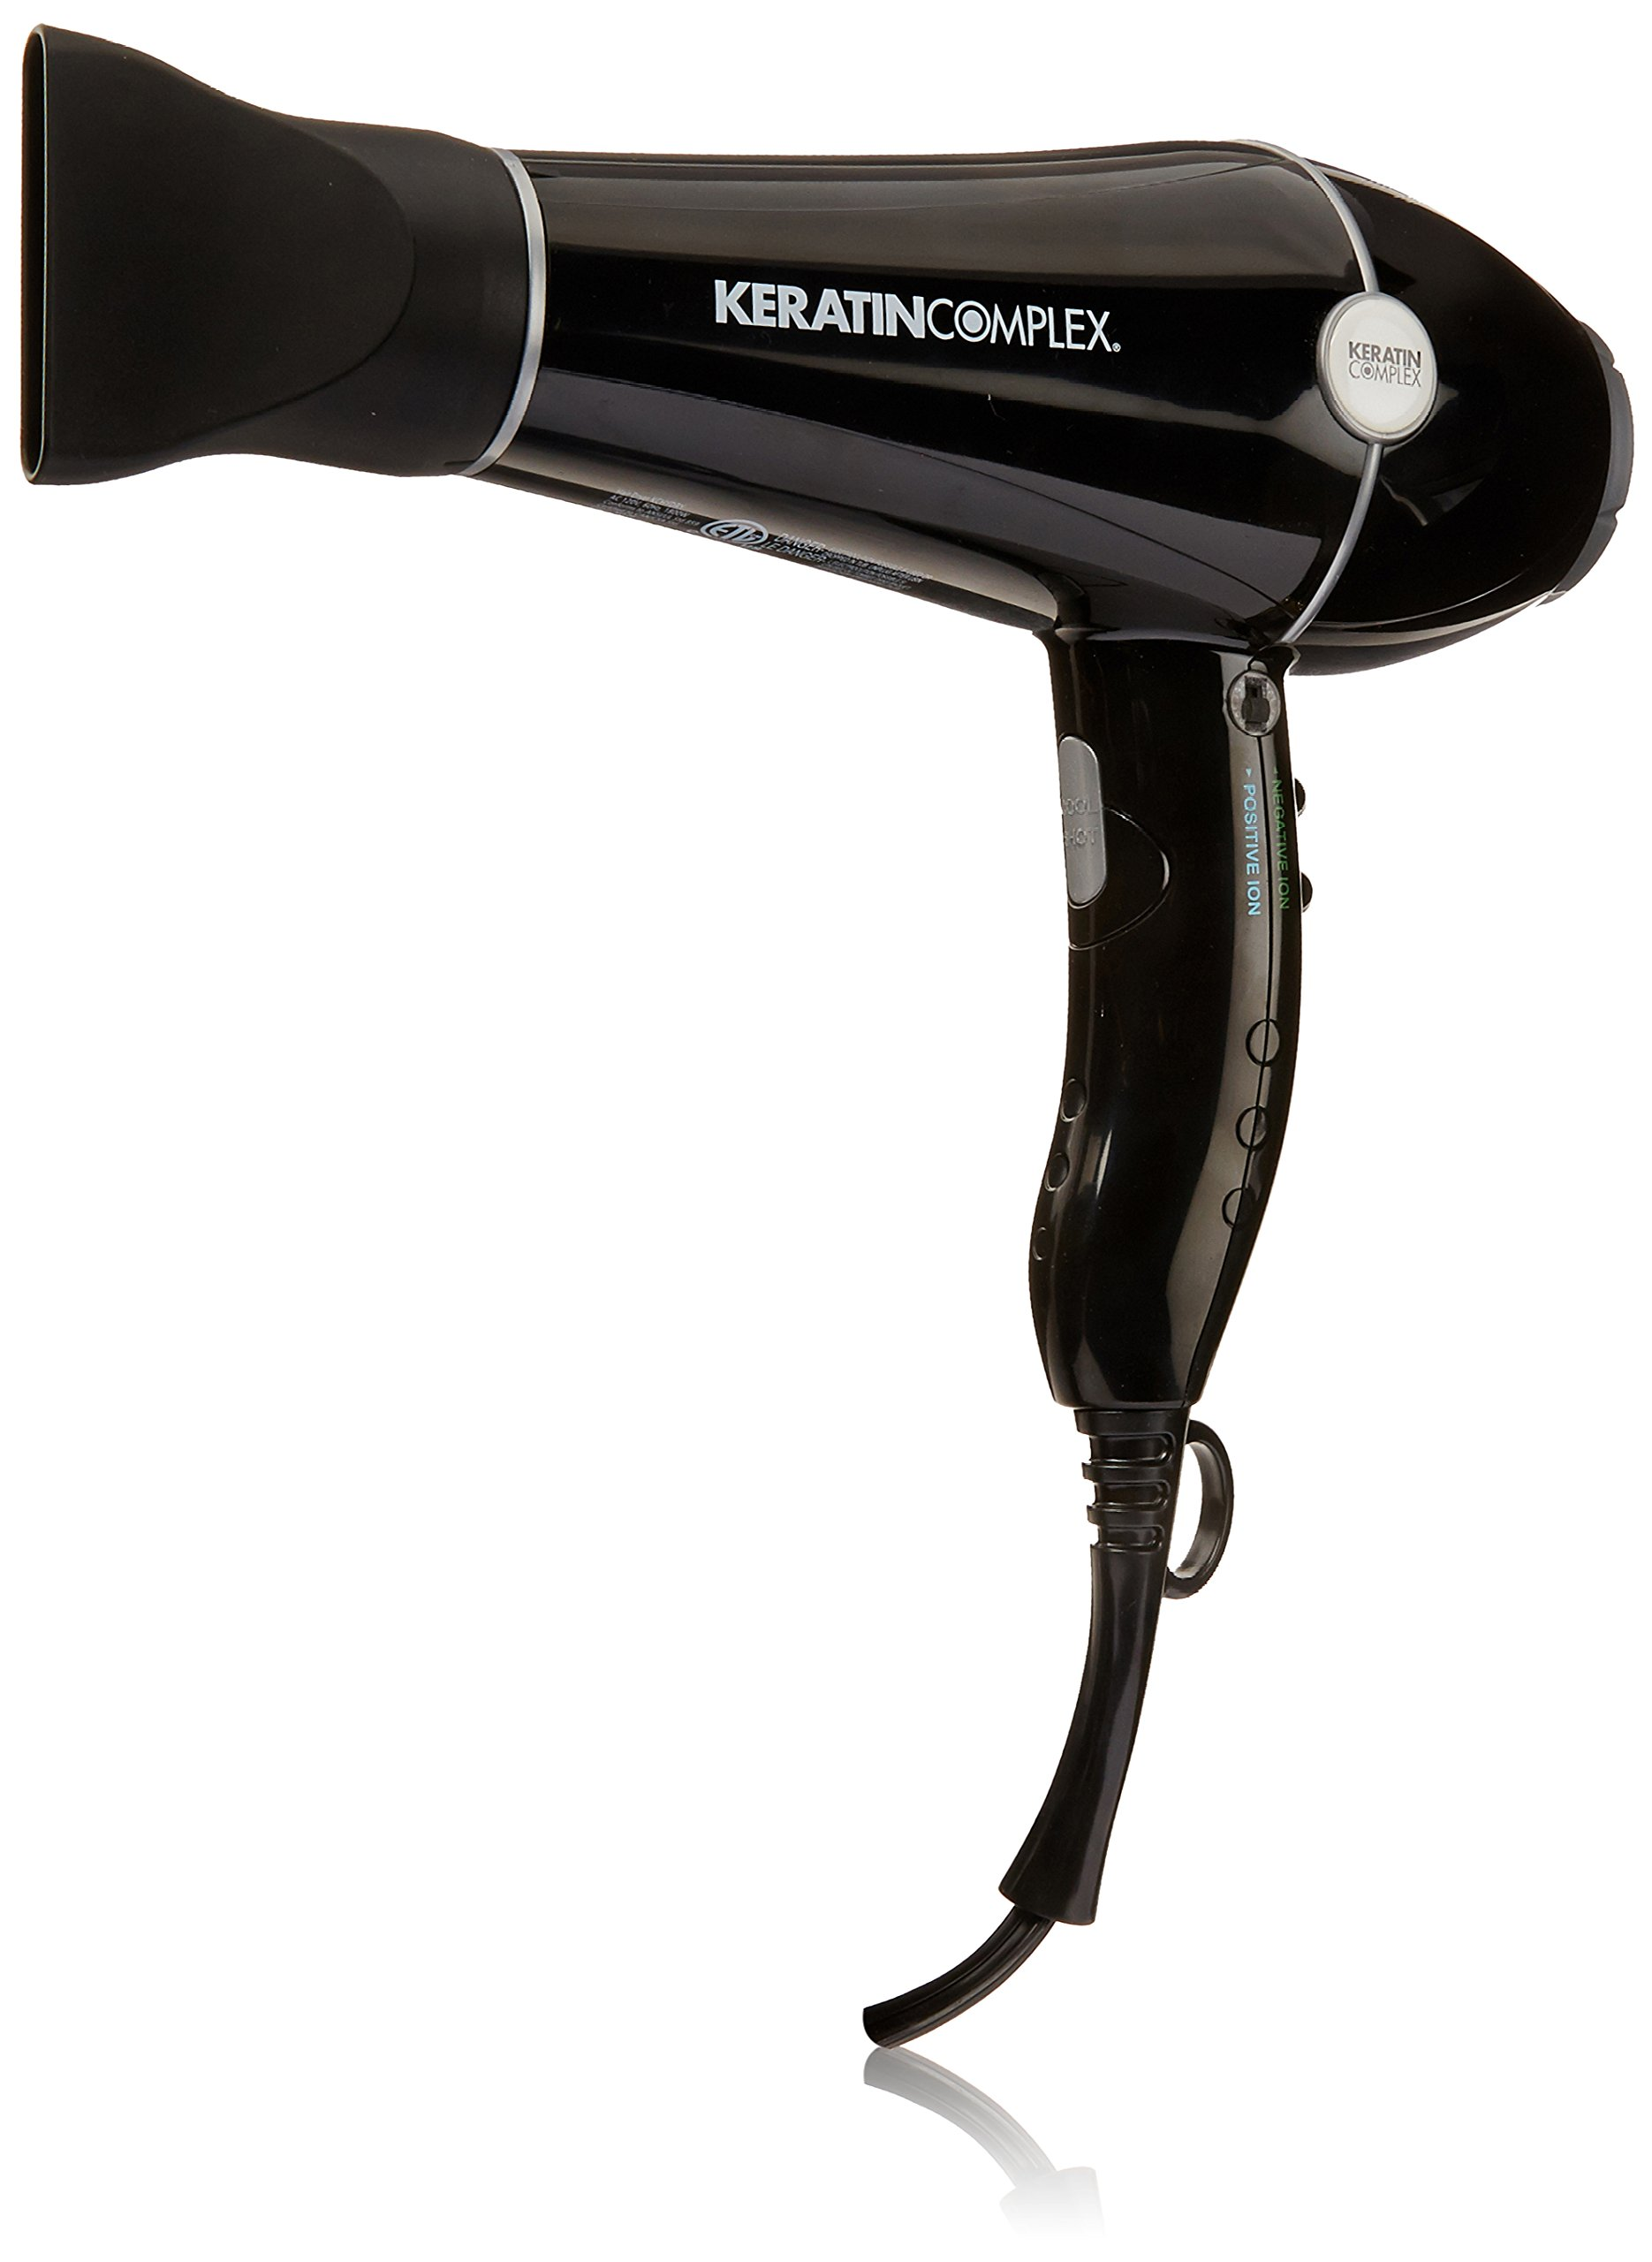 Keratin Complex Hydradry Dual Ion Ceramic Professional Smoothing Dryer by Keratin Complex